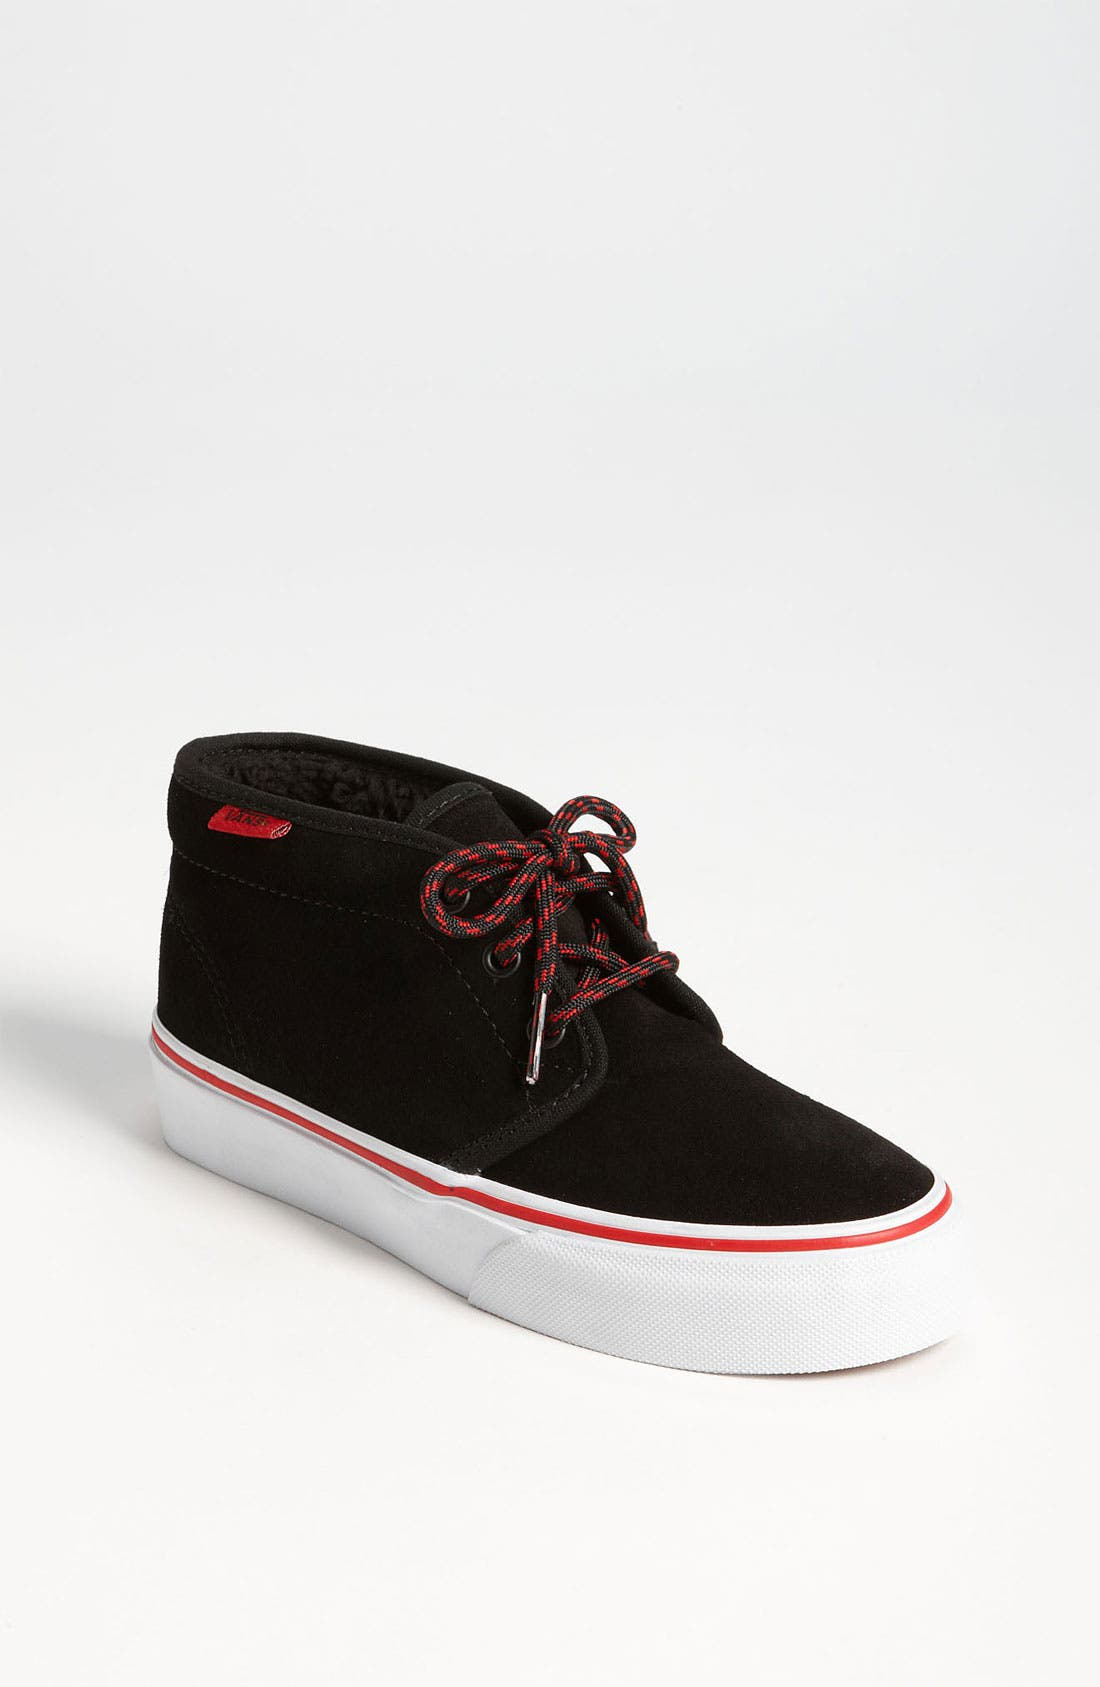 Main Image - Vans Chukka Boot (Toddler, Little Kid & Big Kid)